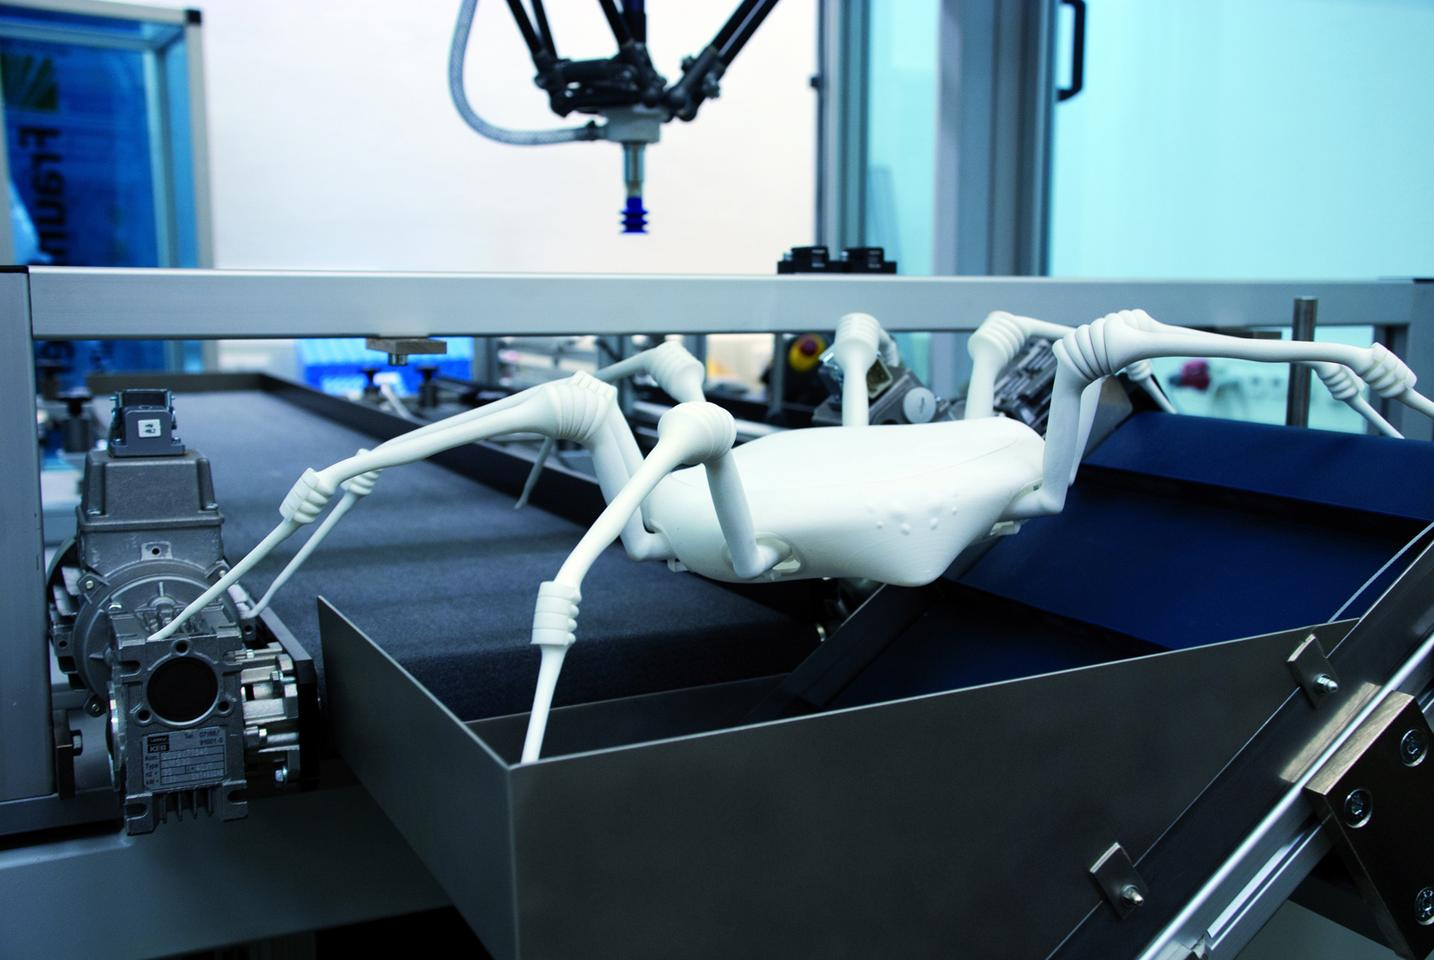 The eight-legged robot spider created by Fraunhofer researchers is made using a 3D printing process